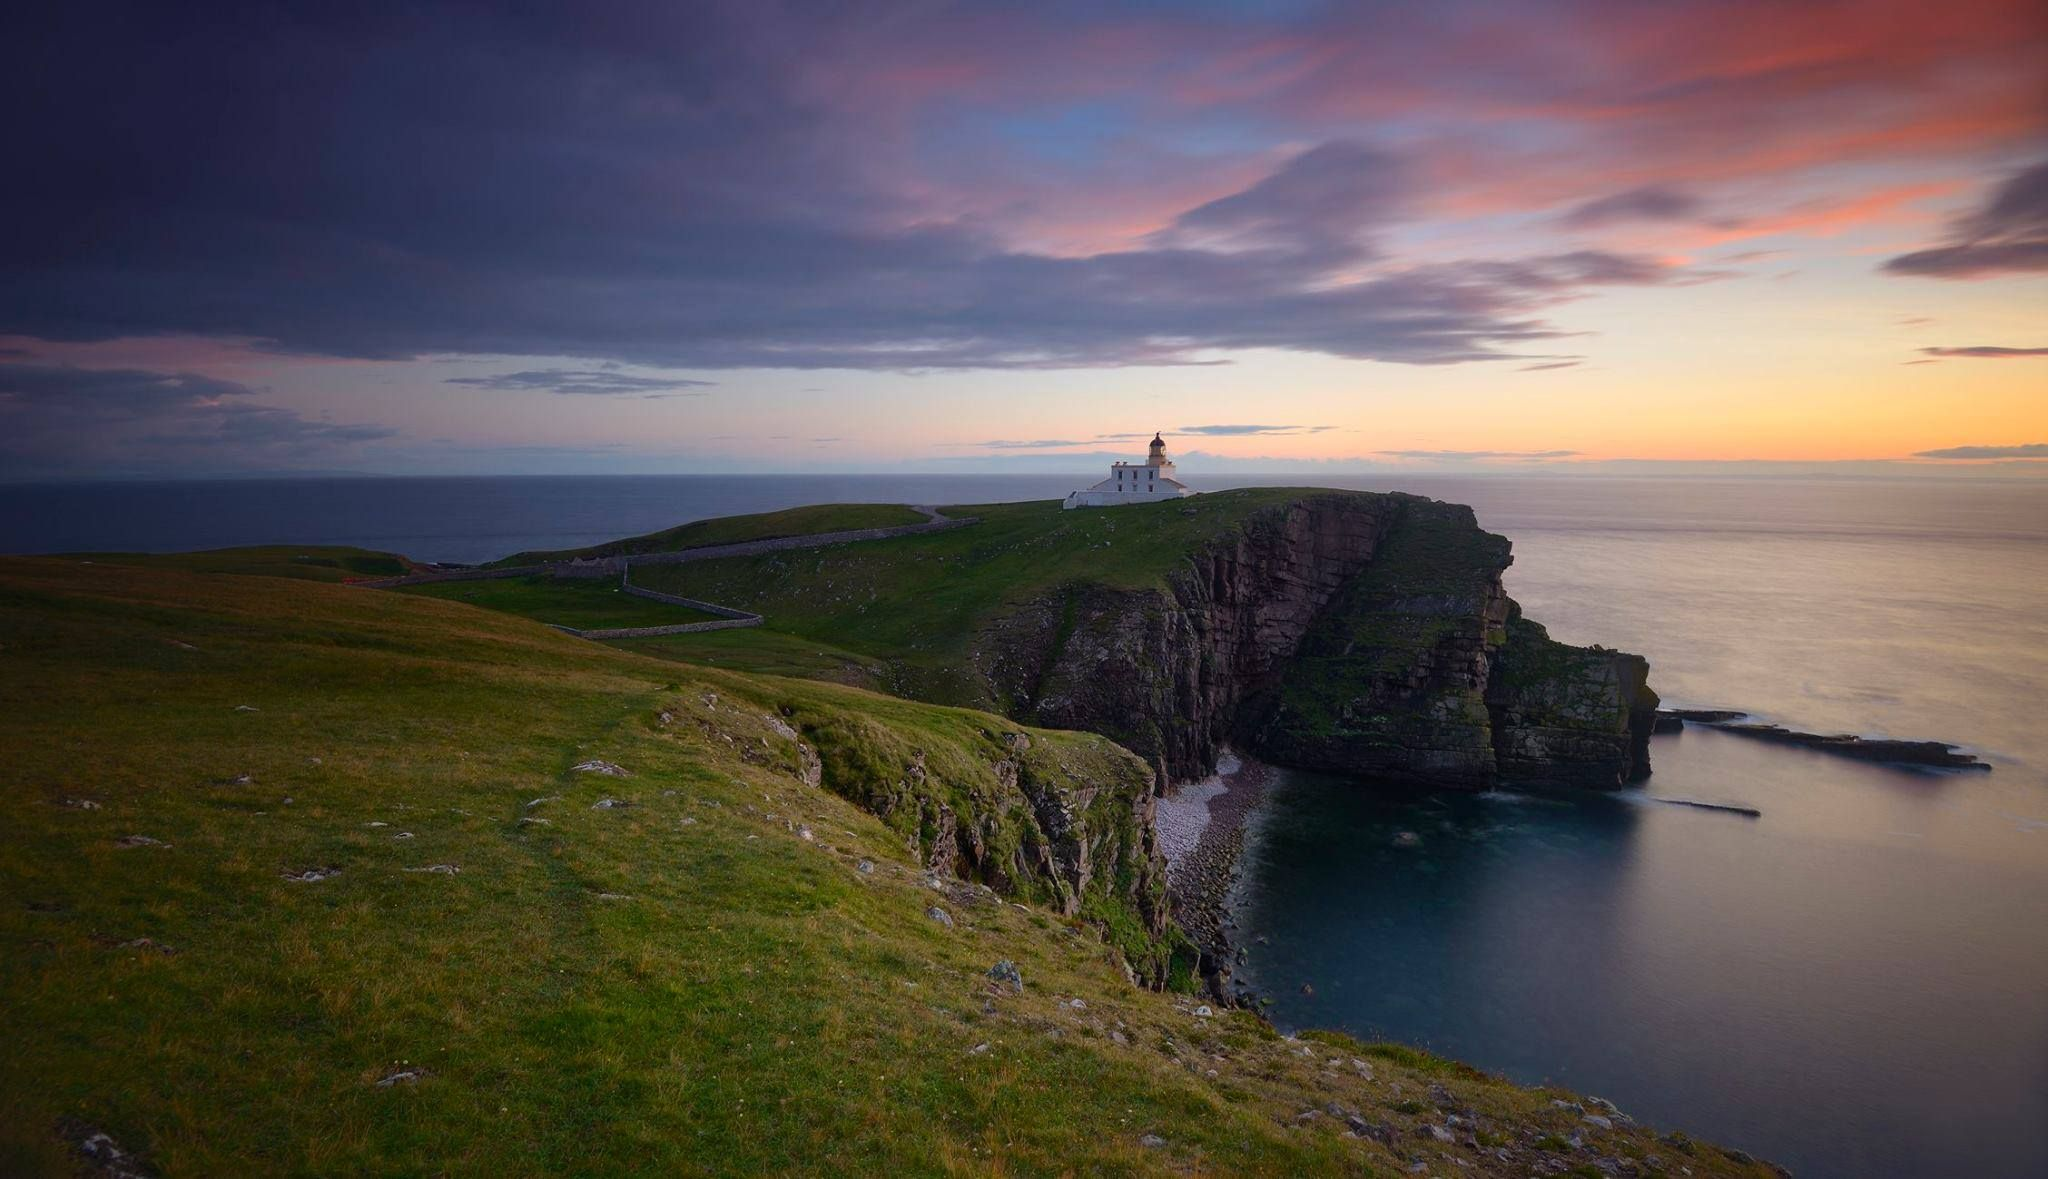 There are around 200 lighthouses dotted around Scotland's